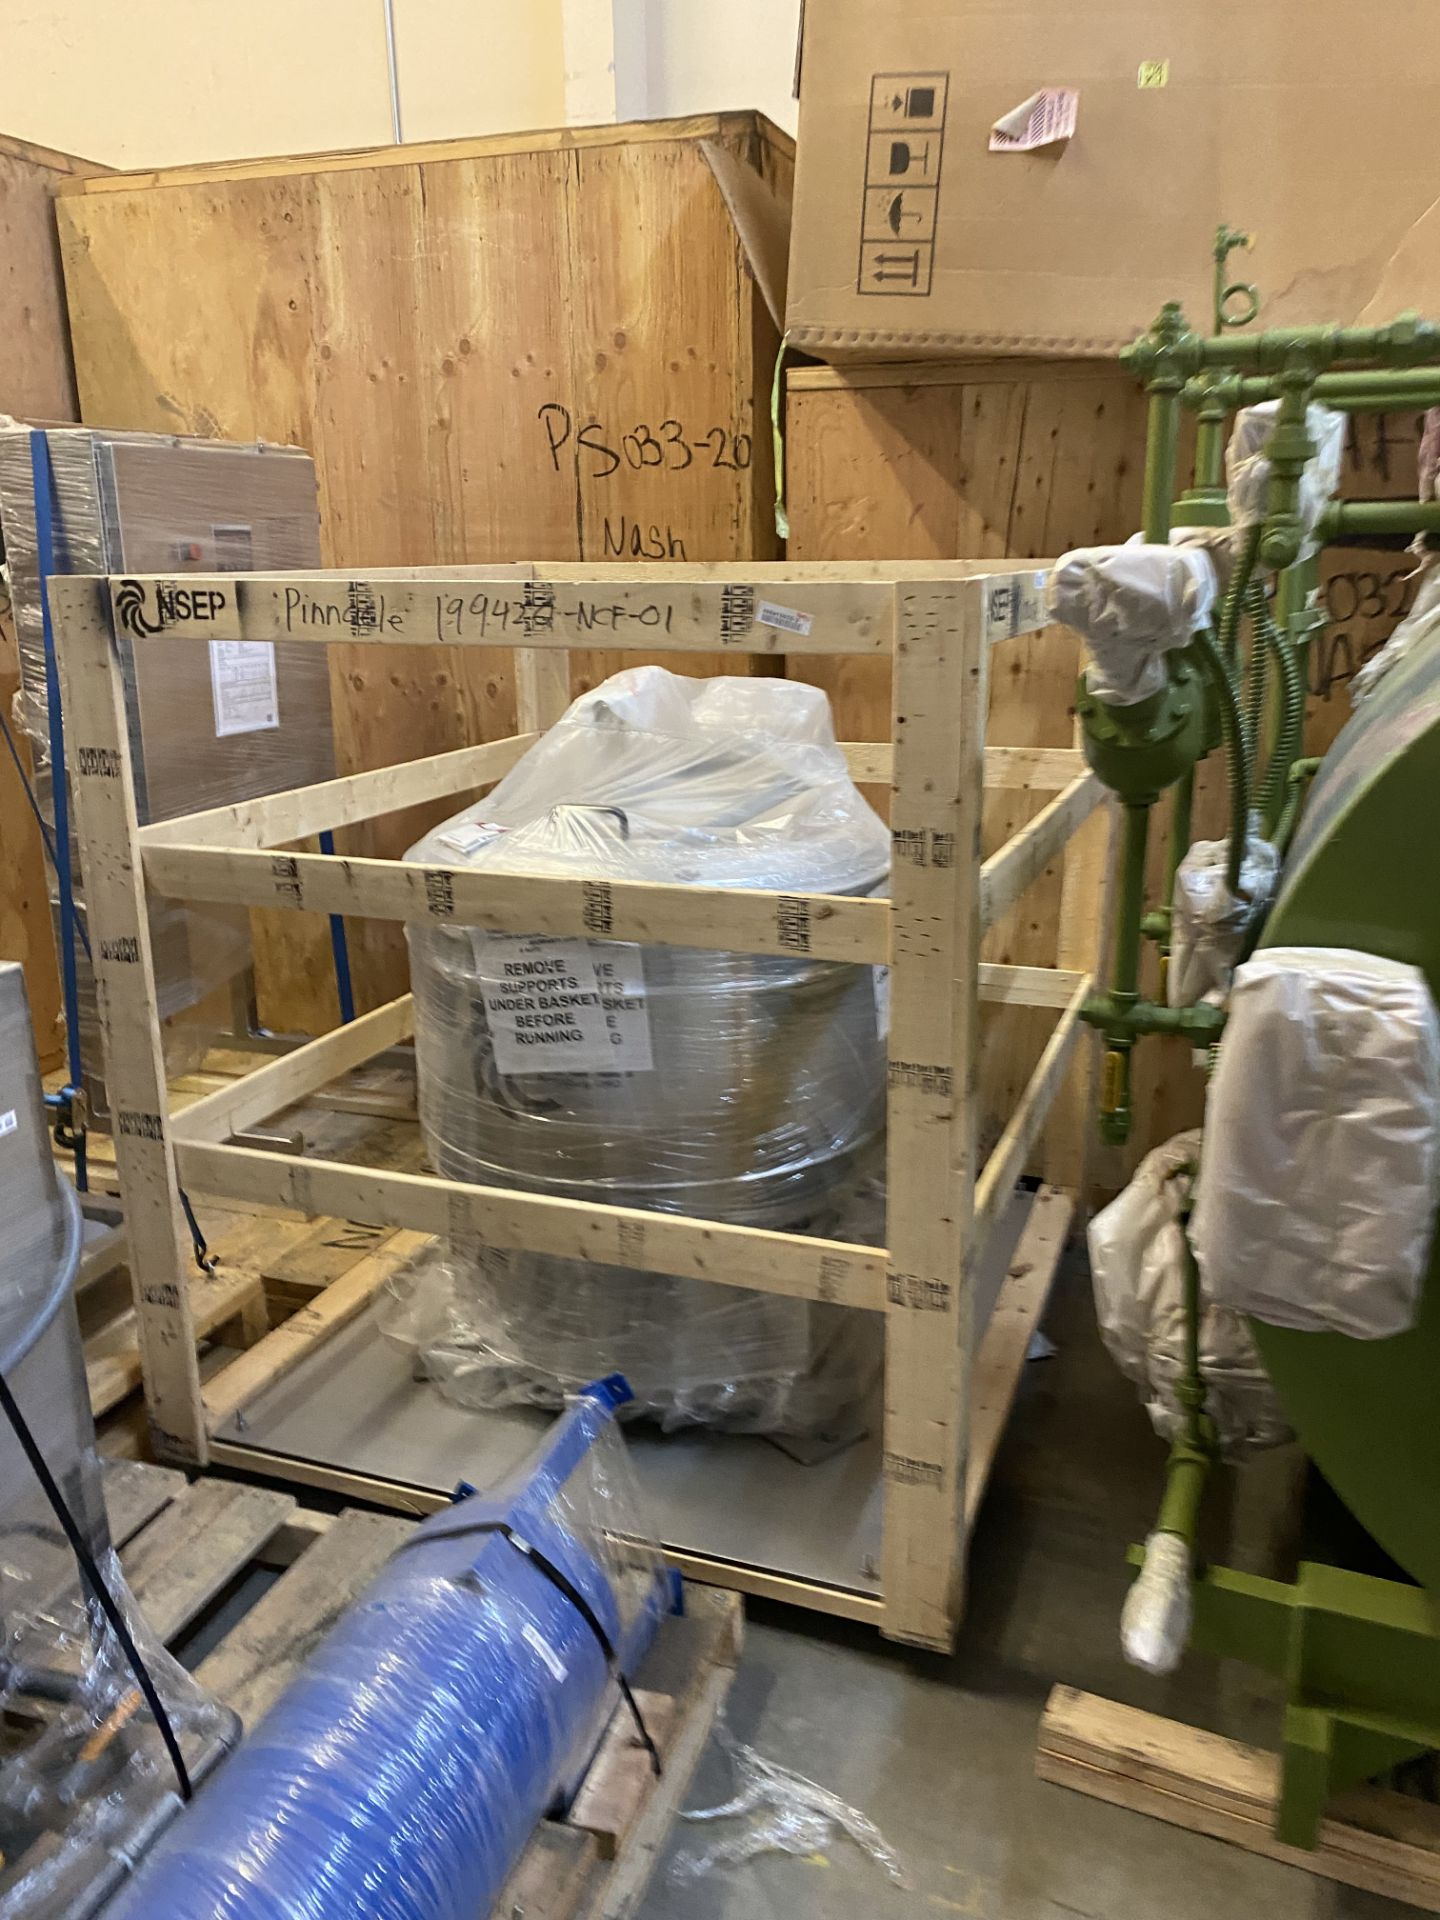 Unused/ Still-In-Crate- North Star Engineering Products Explosion Proof Basket Centrifuge, Model 755 - Image 2 of 4